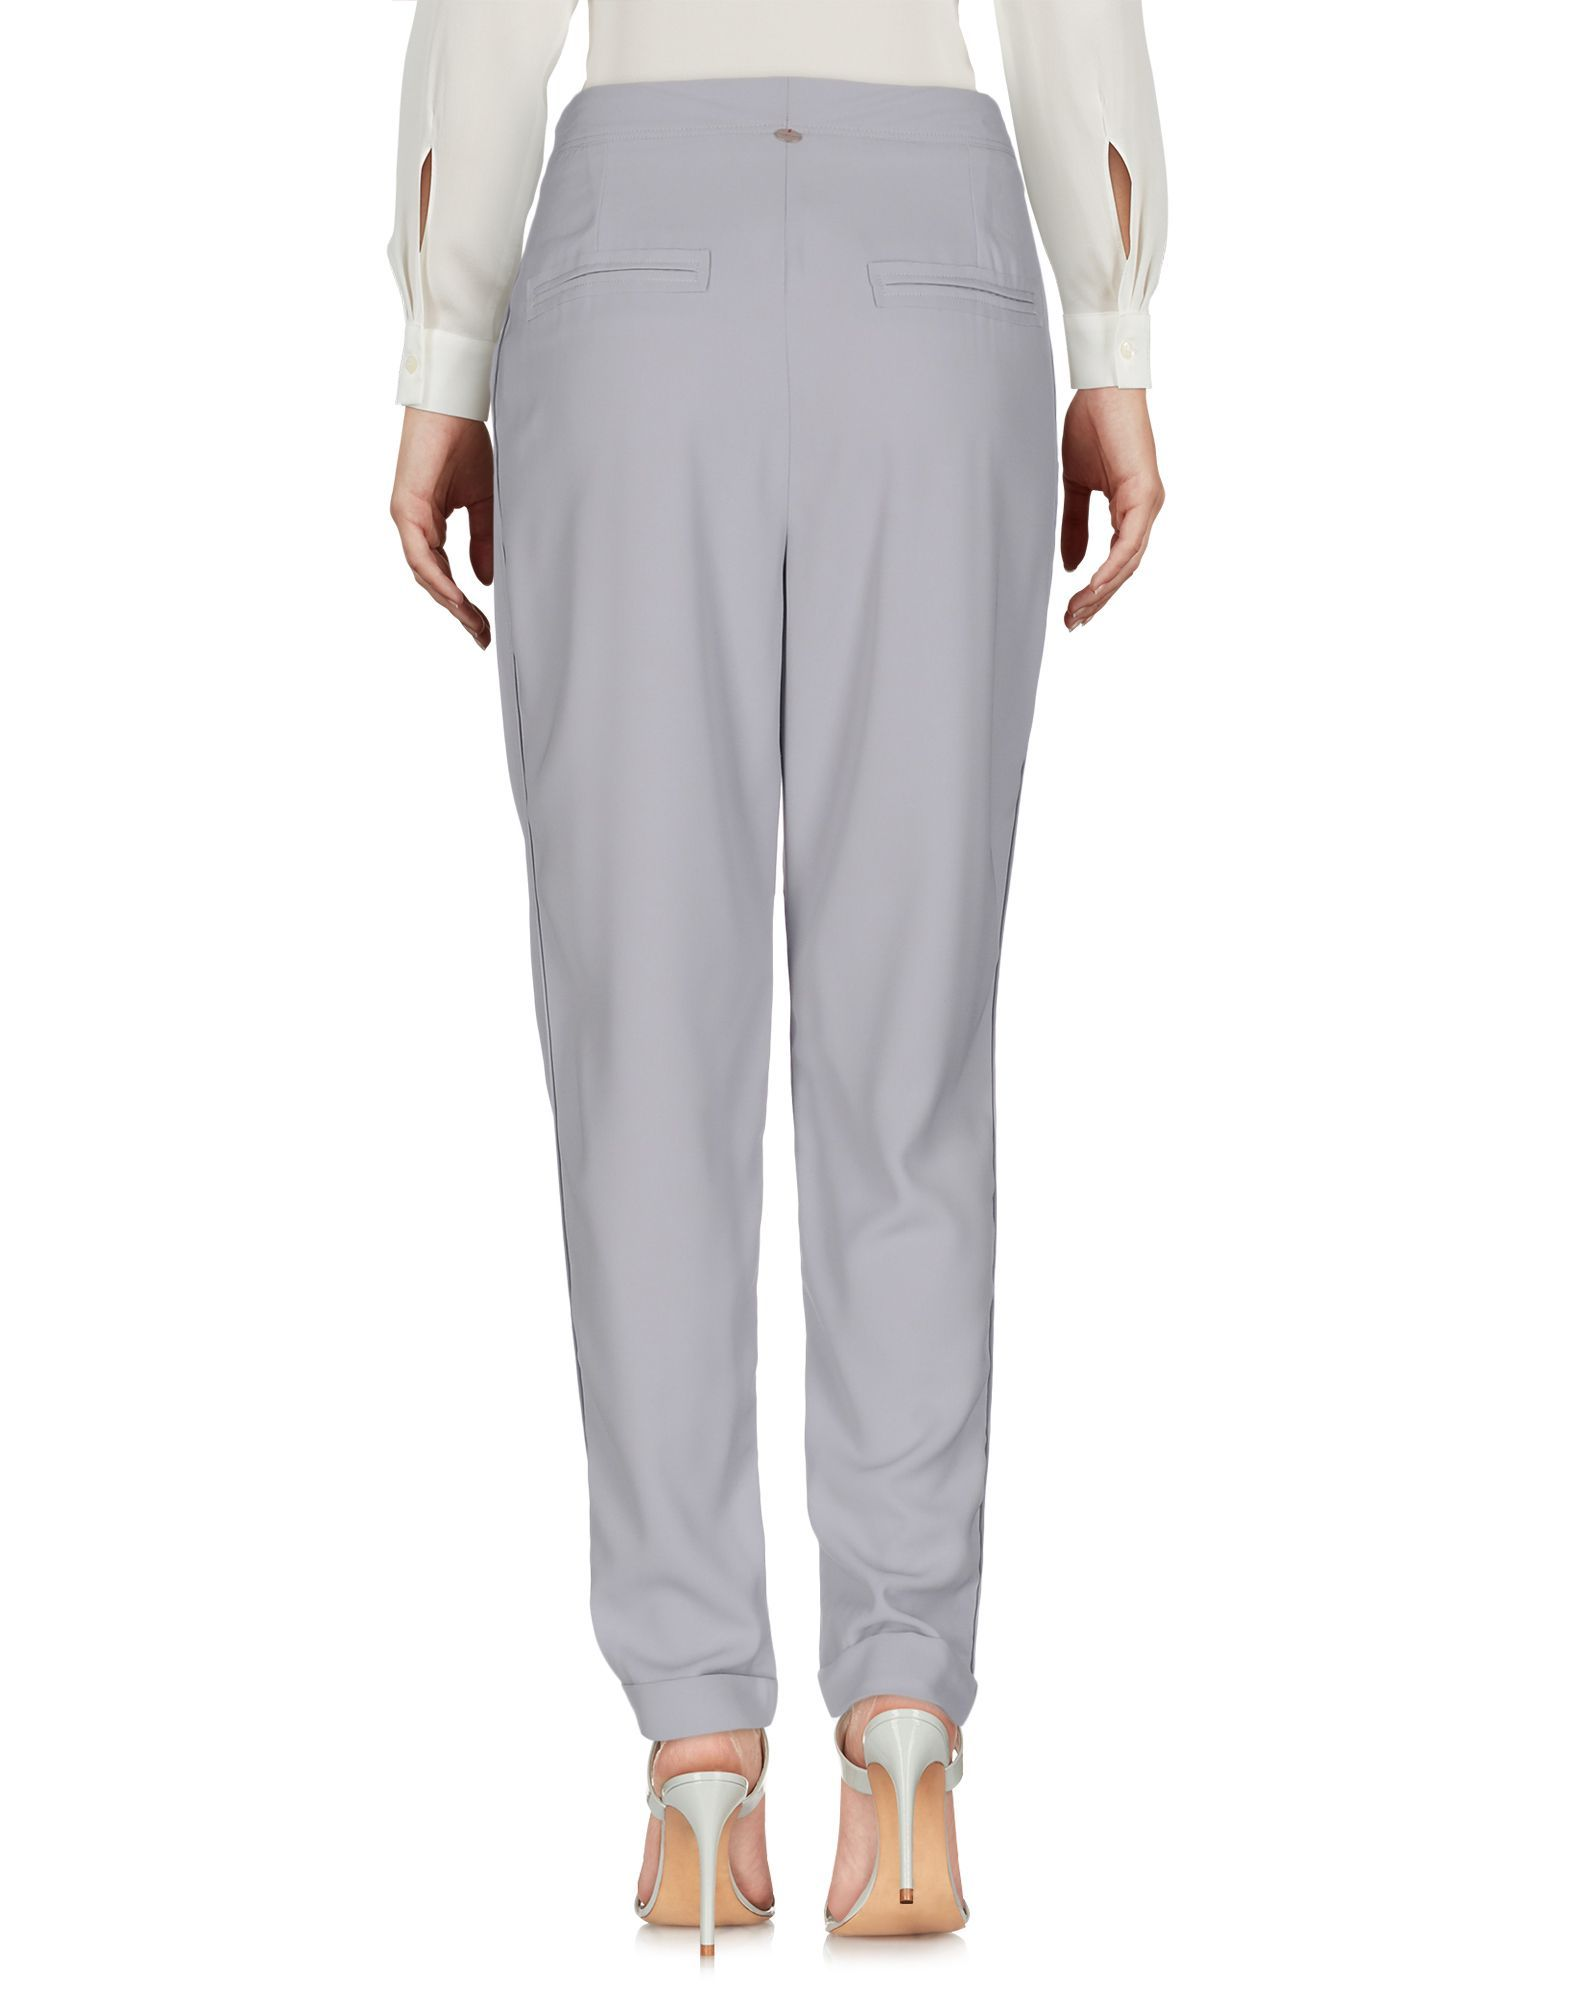 TROUSERS Liviana Conti Grey Woman Polyester